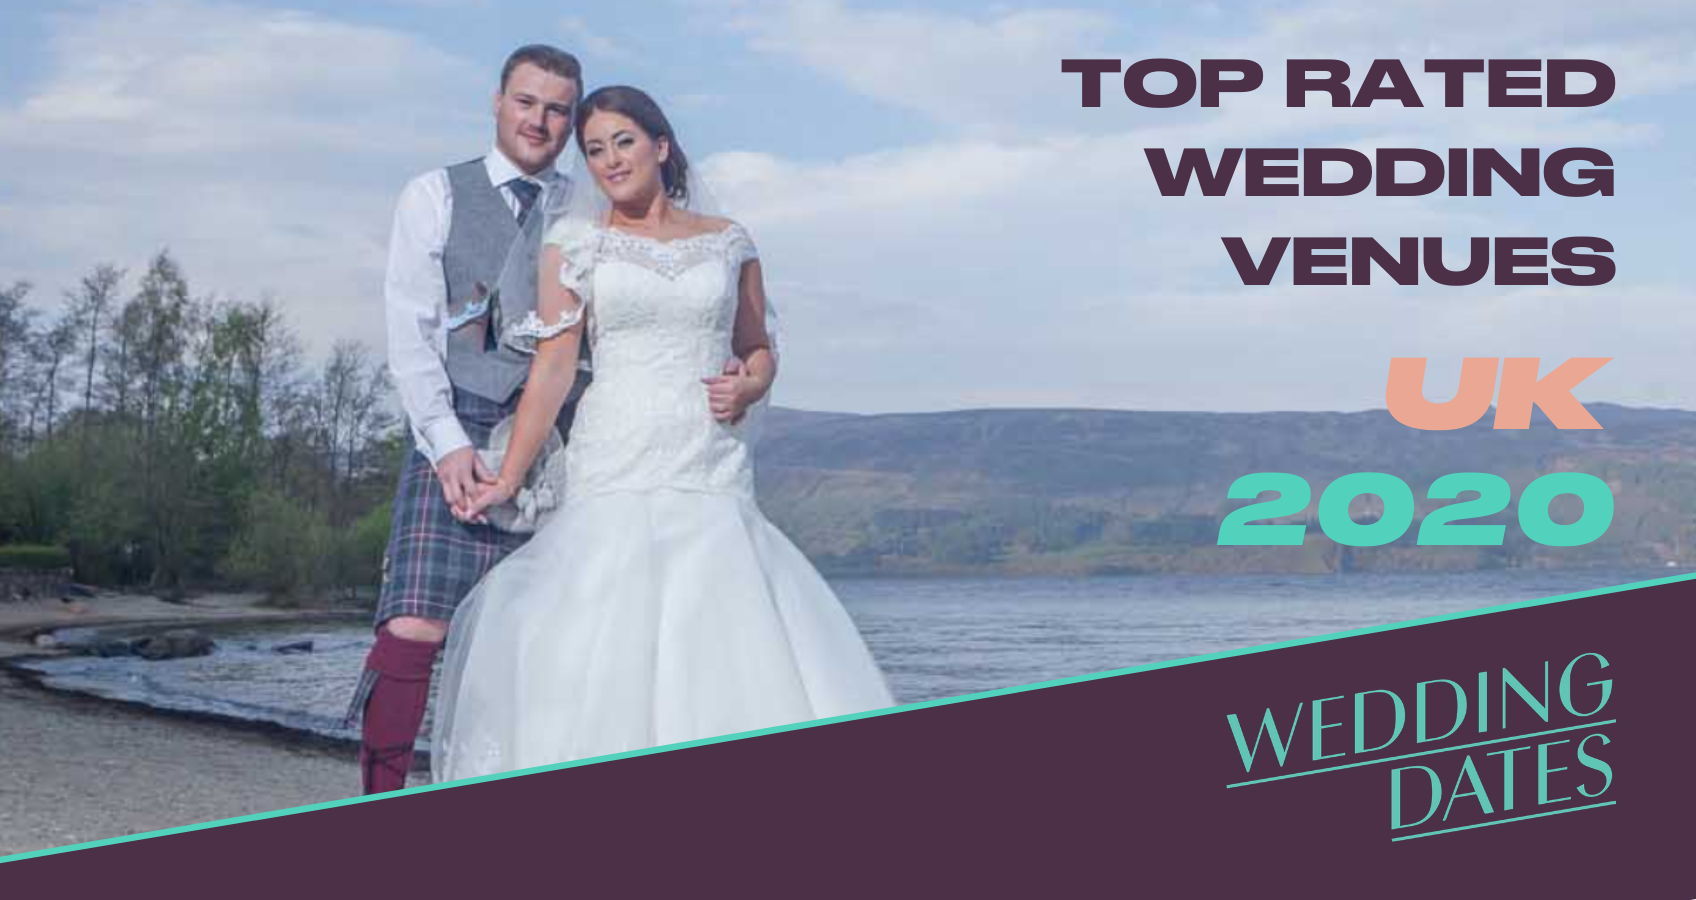 WeddingDates UK Awards Top Rated Wedding Venues